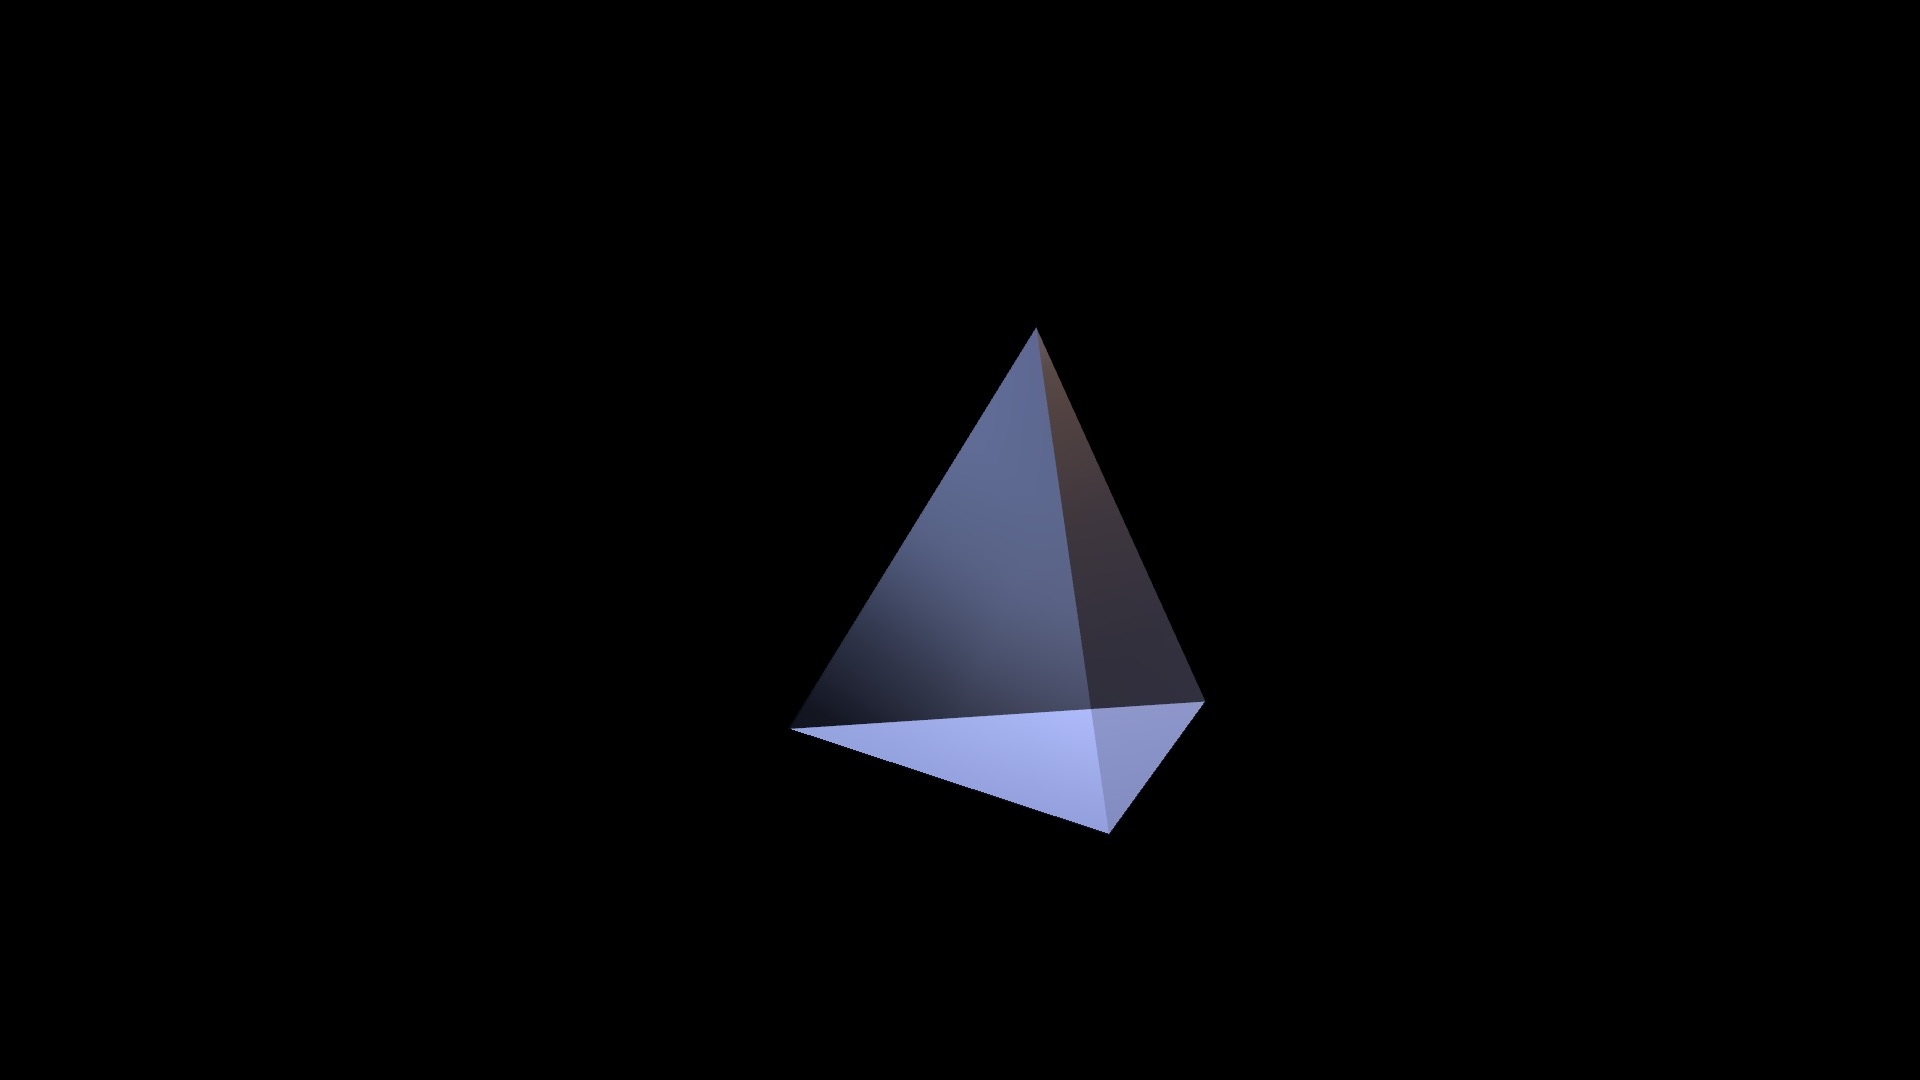 tetrahedron from 3D Text